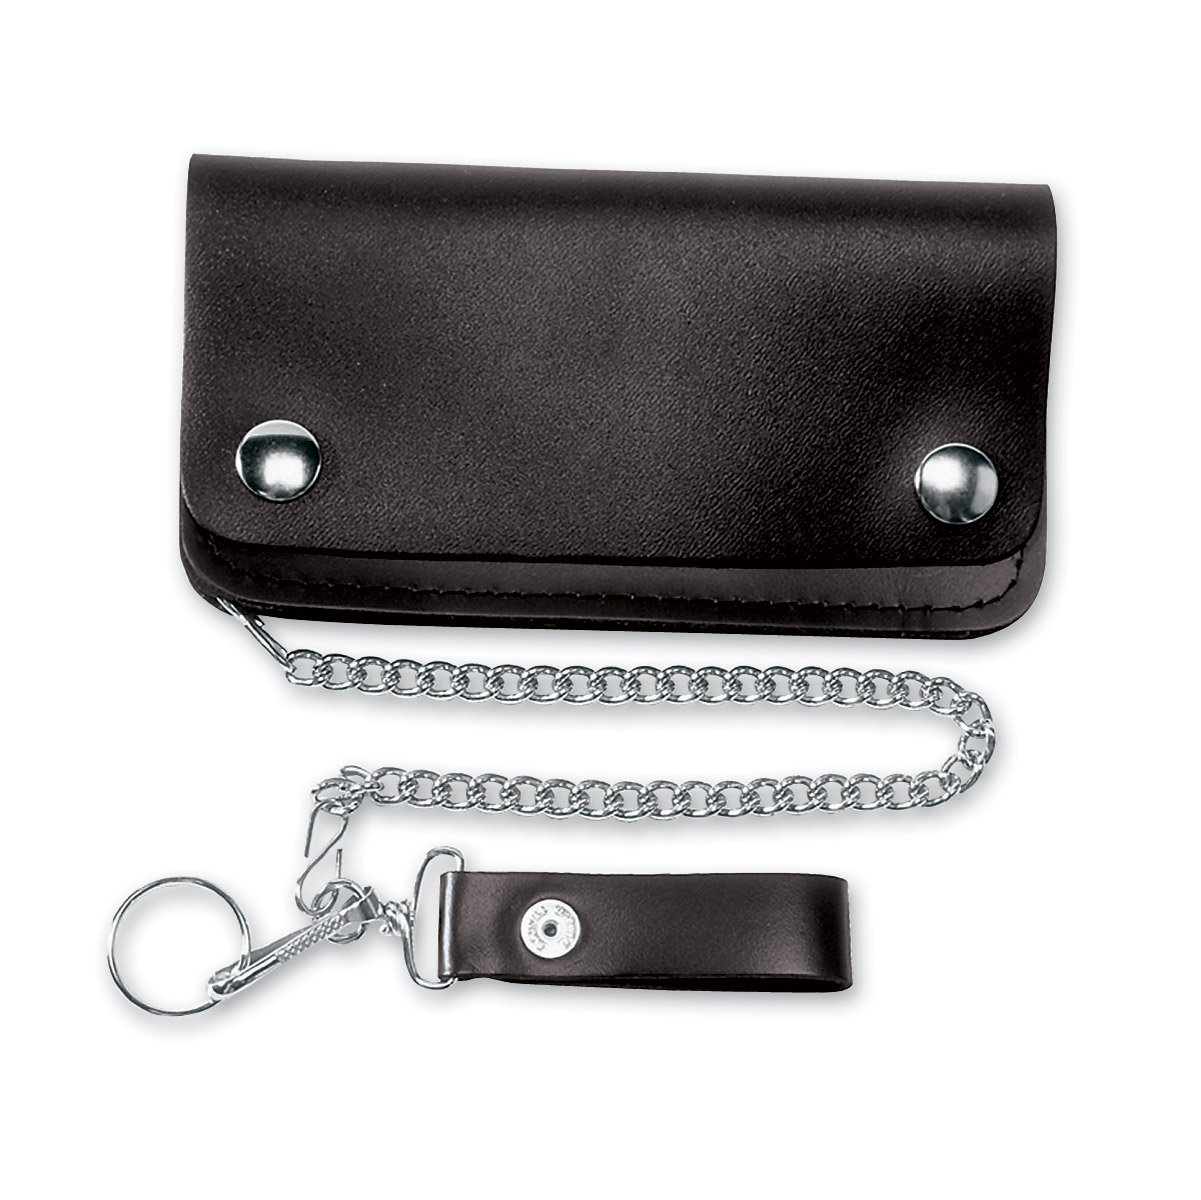 Carroll Leather 6″ Five-Pocket Chain Wallet